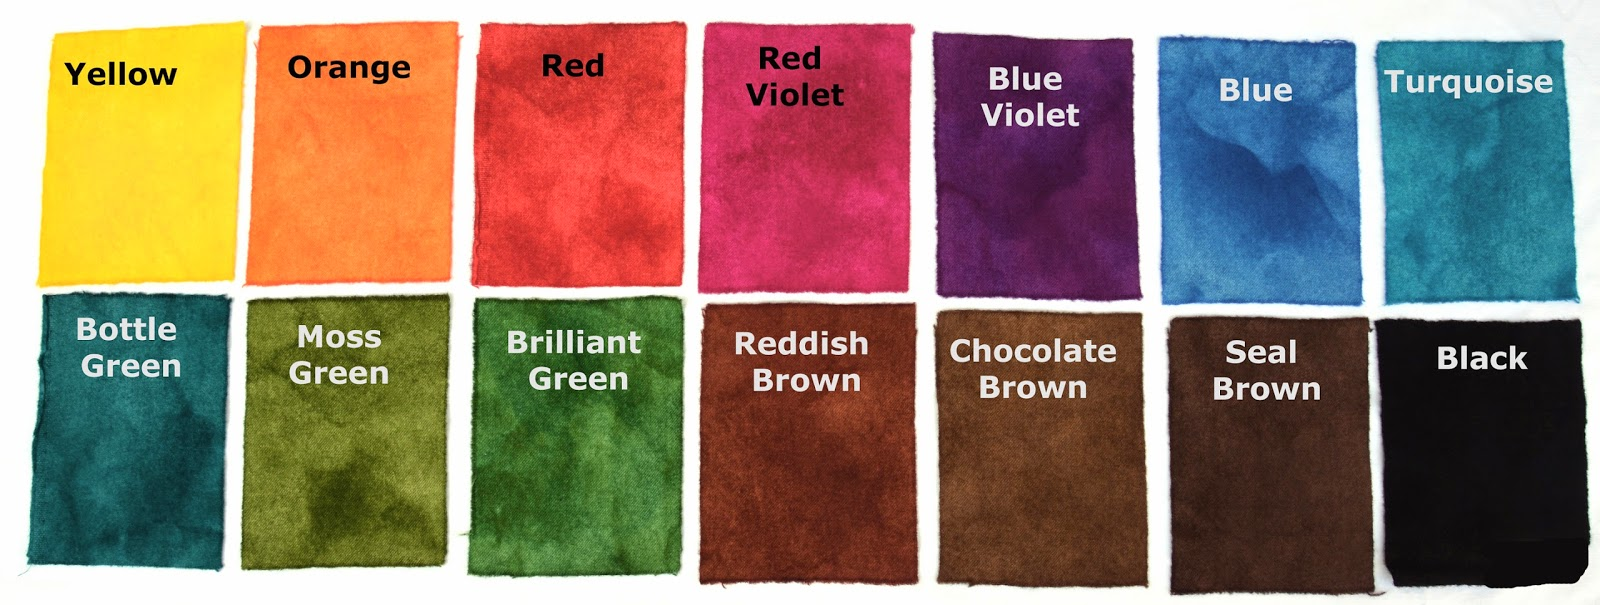 Wandaworks colour chart for majic carpet dyes my friend starr asked for a colour chart for majic carpet dyes and i thought you might like it too nvjuhfo Gallery